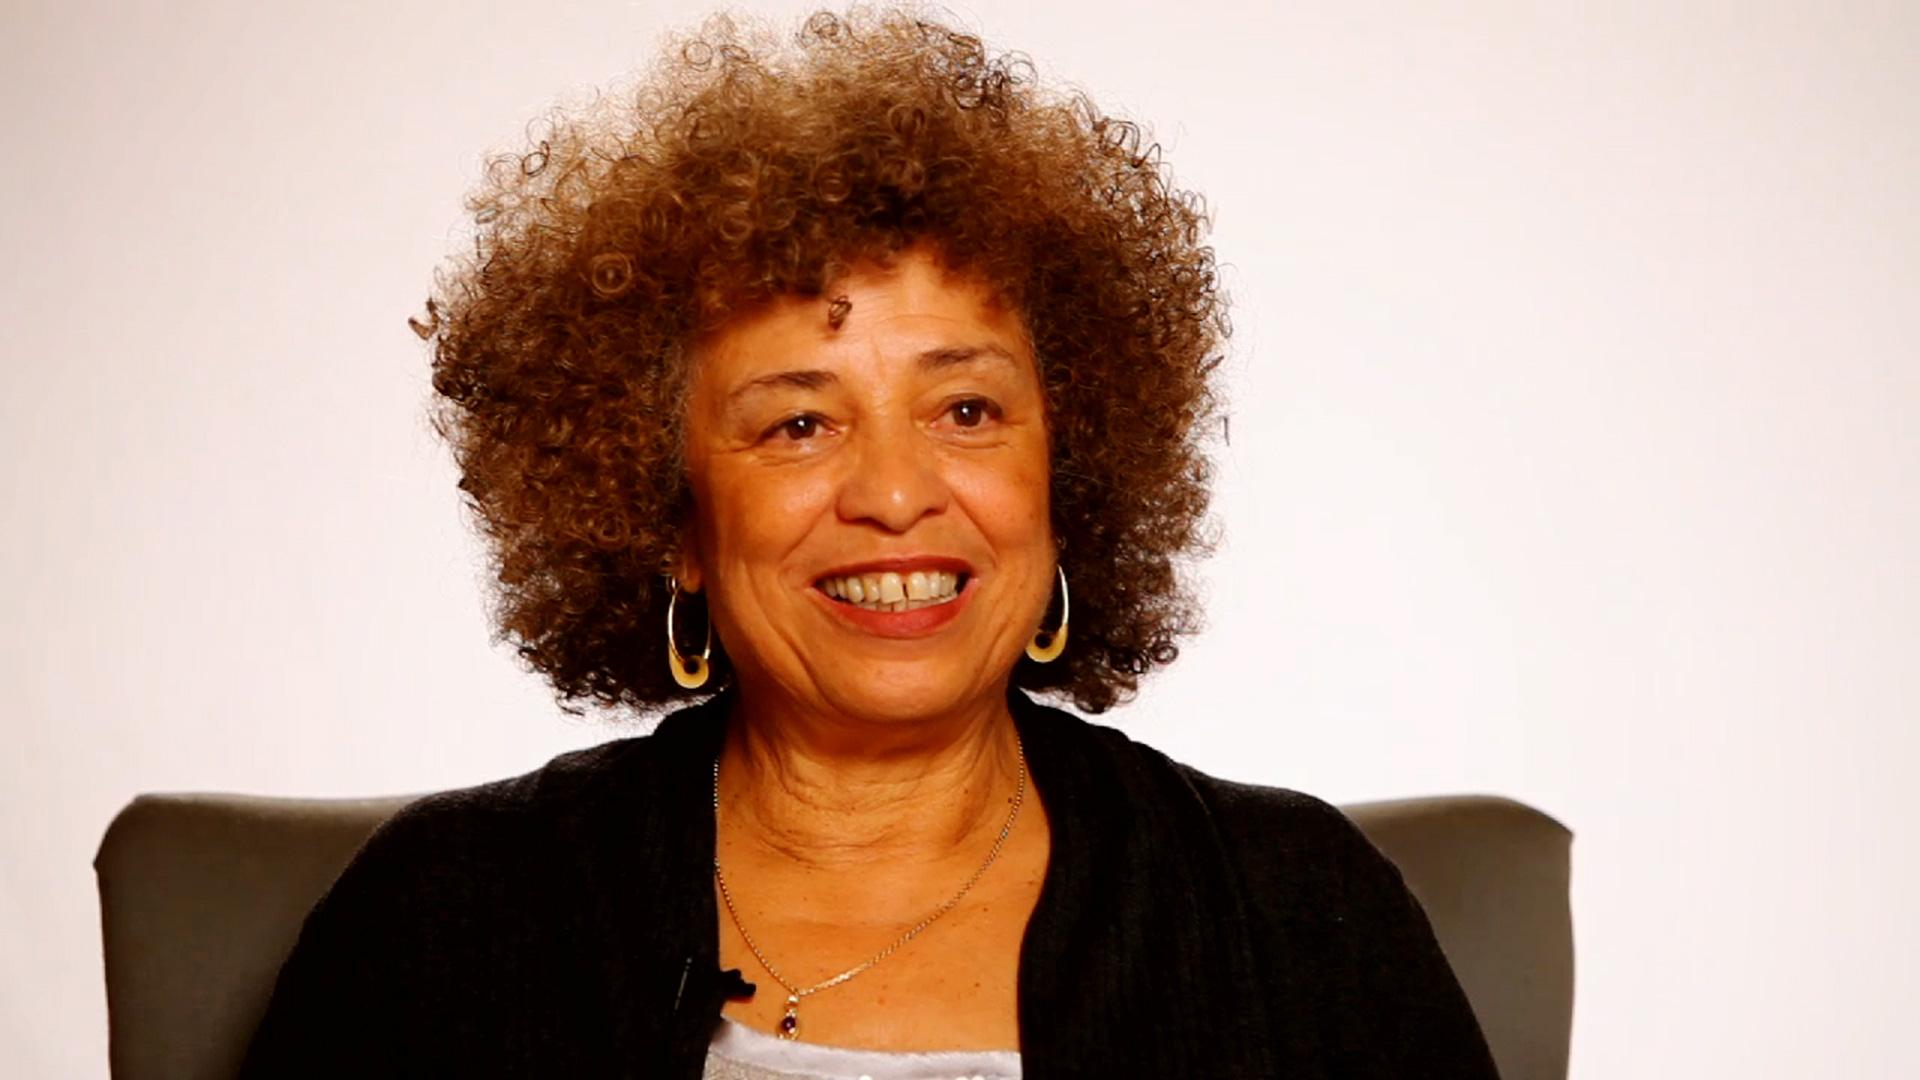 Angela Davis on Seeing Her Younger Self